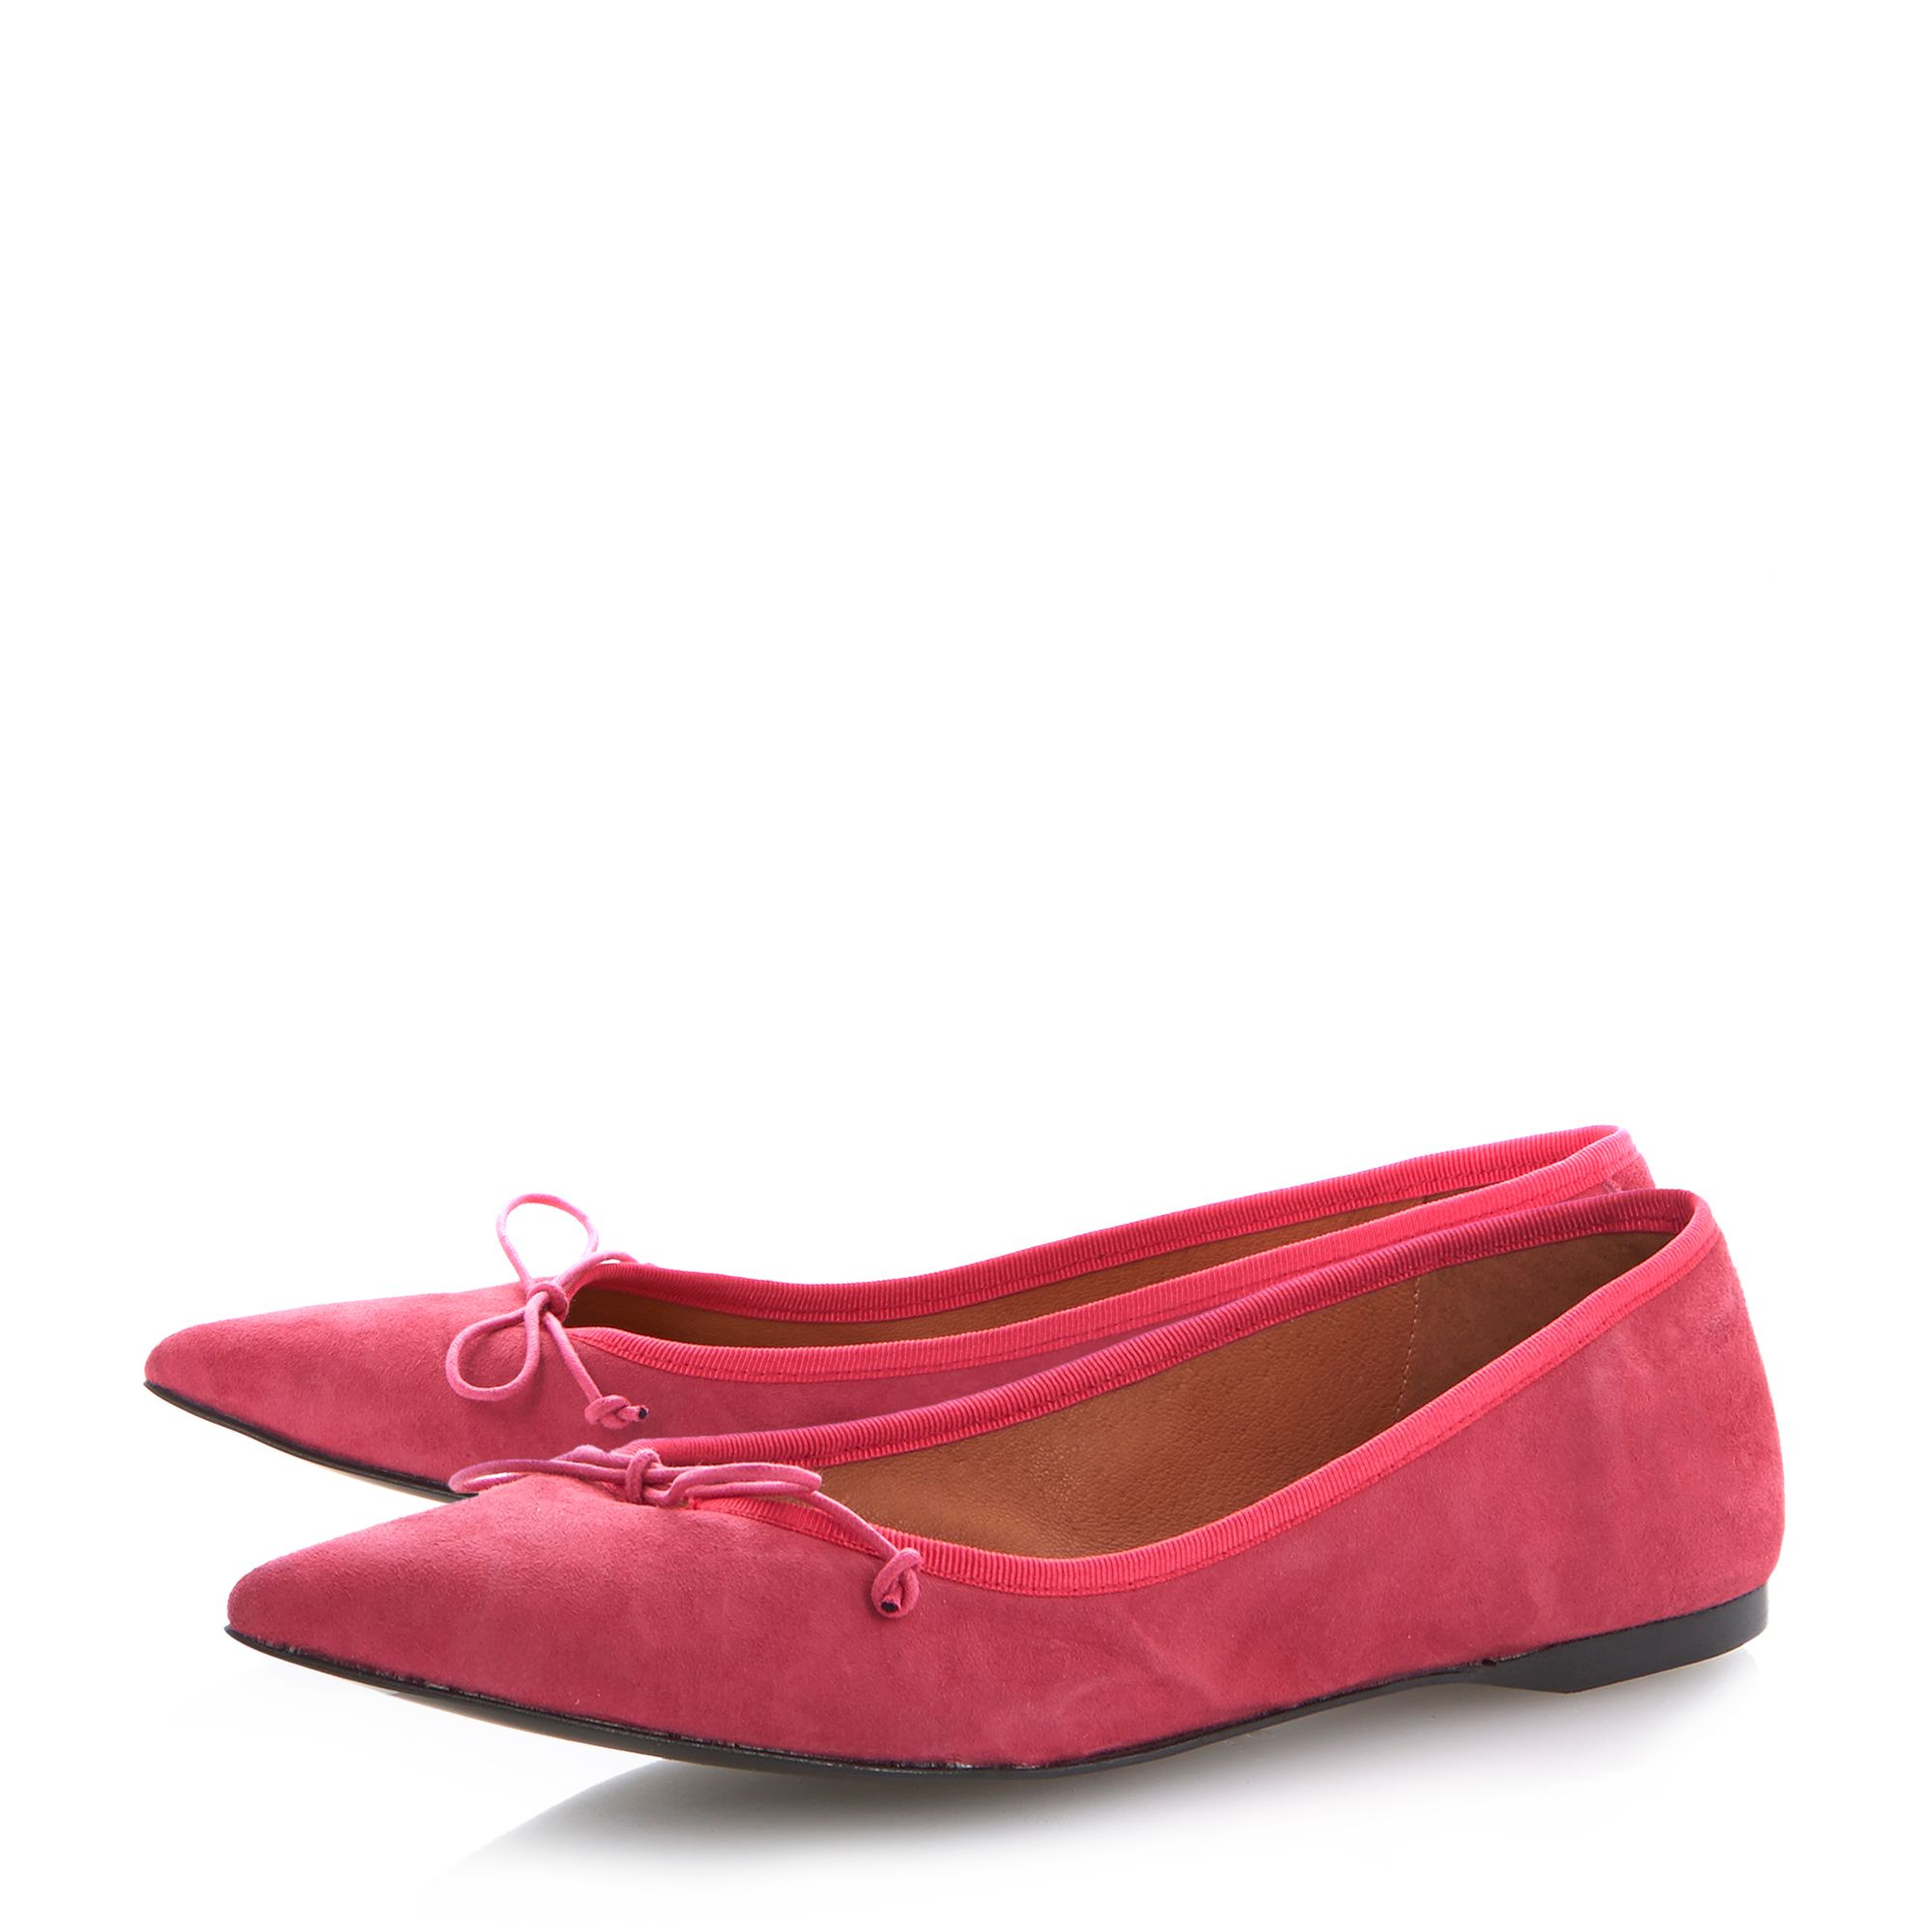 Makeda pointed toe ballerinas